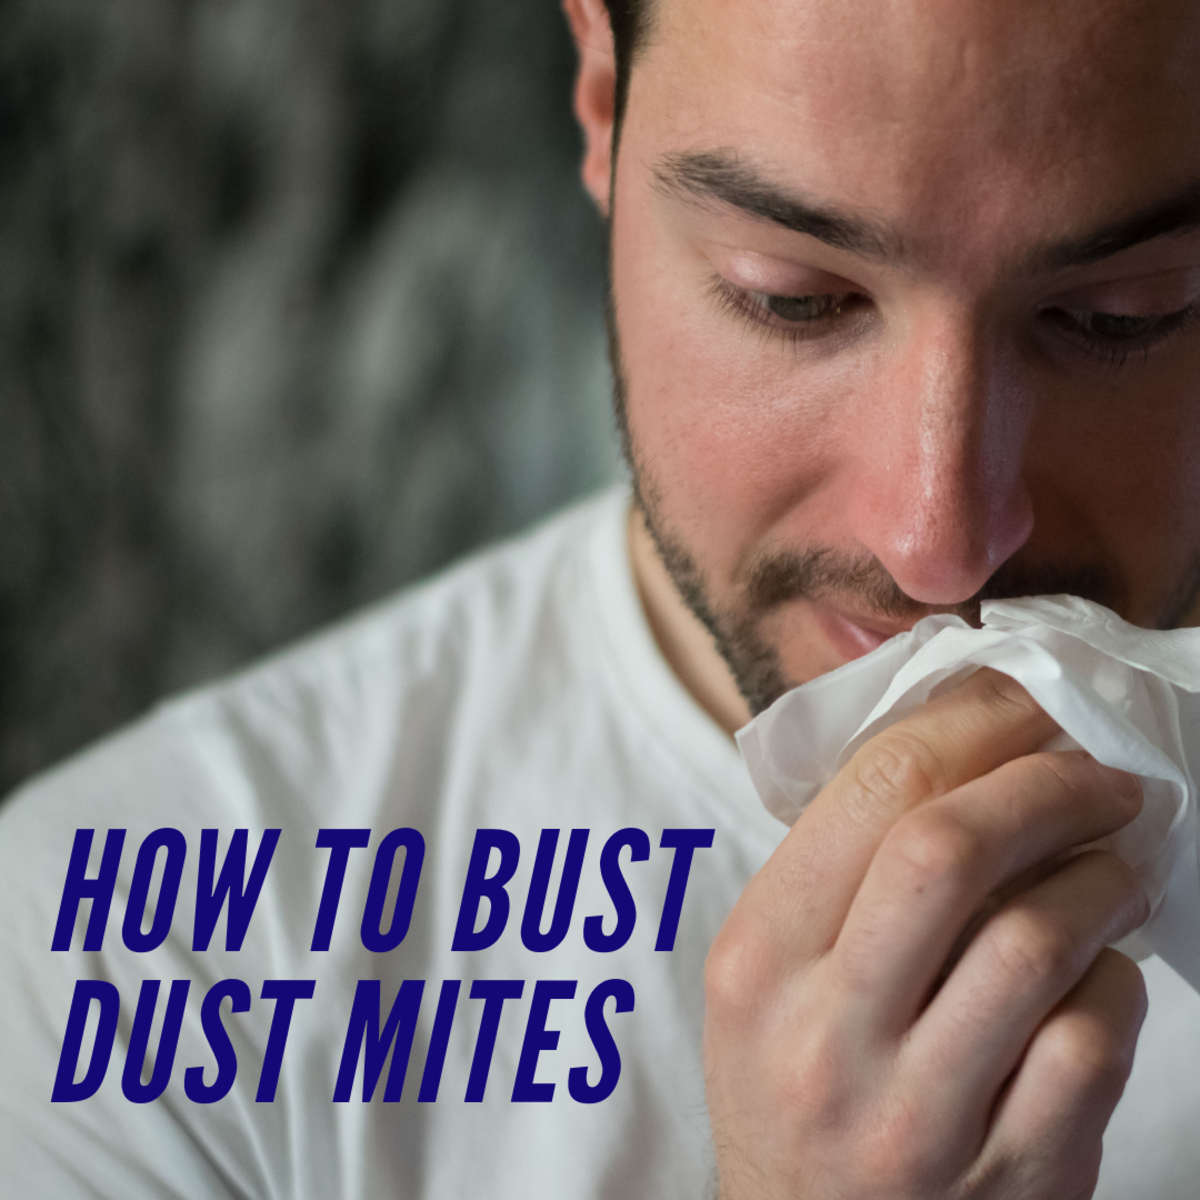 How to bust dust mites.